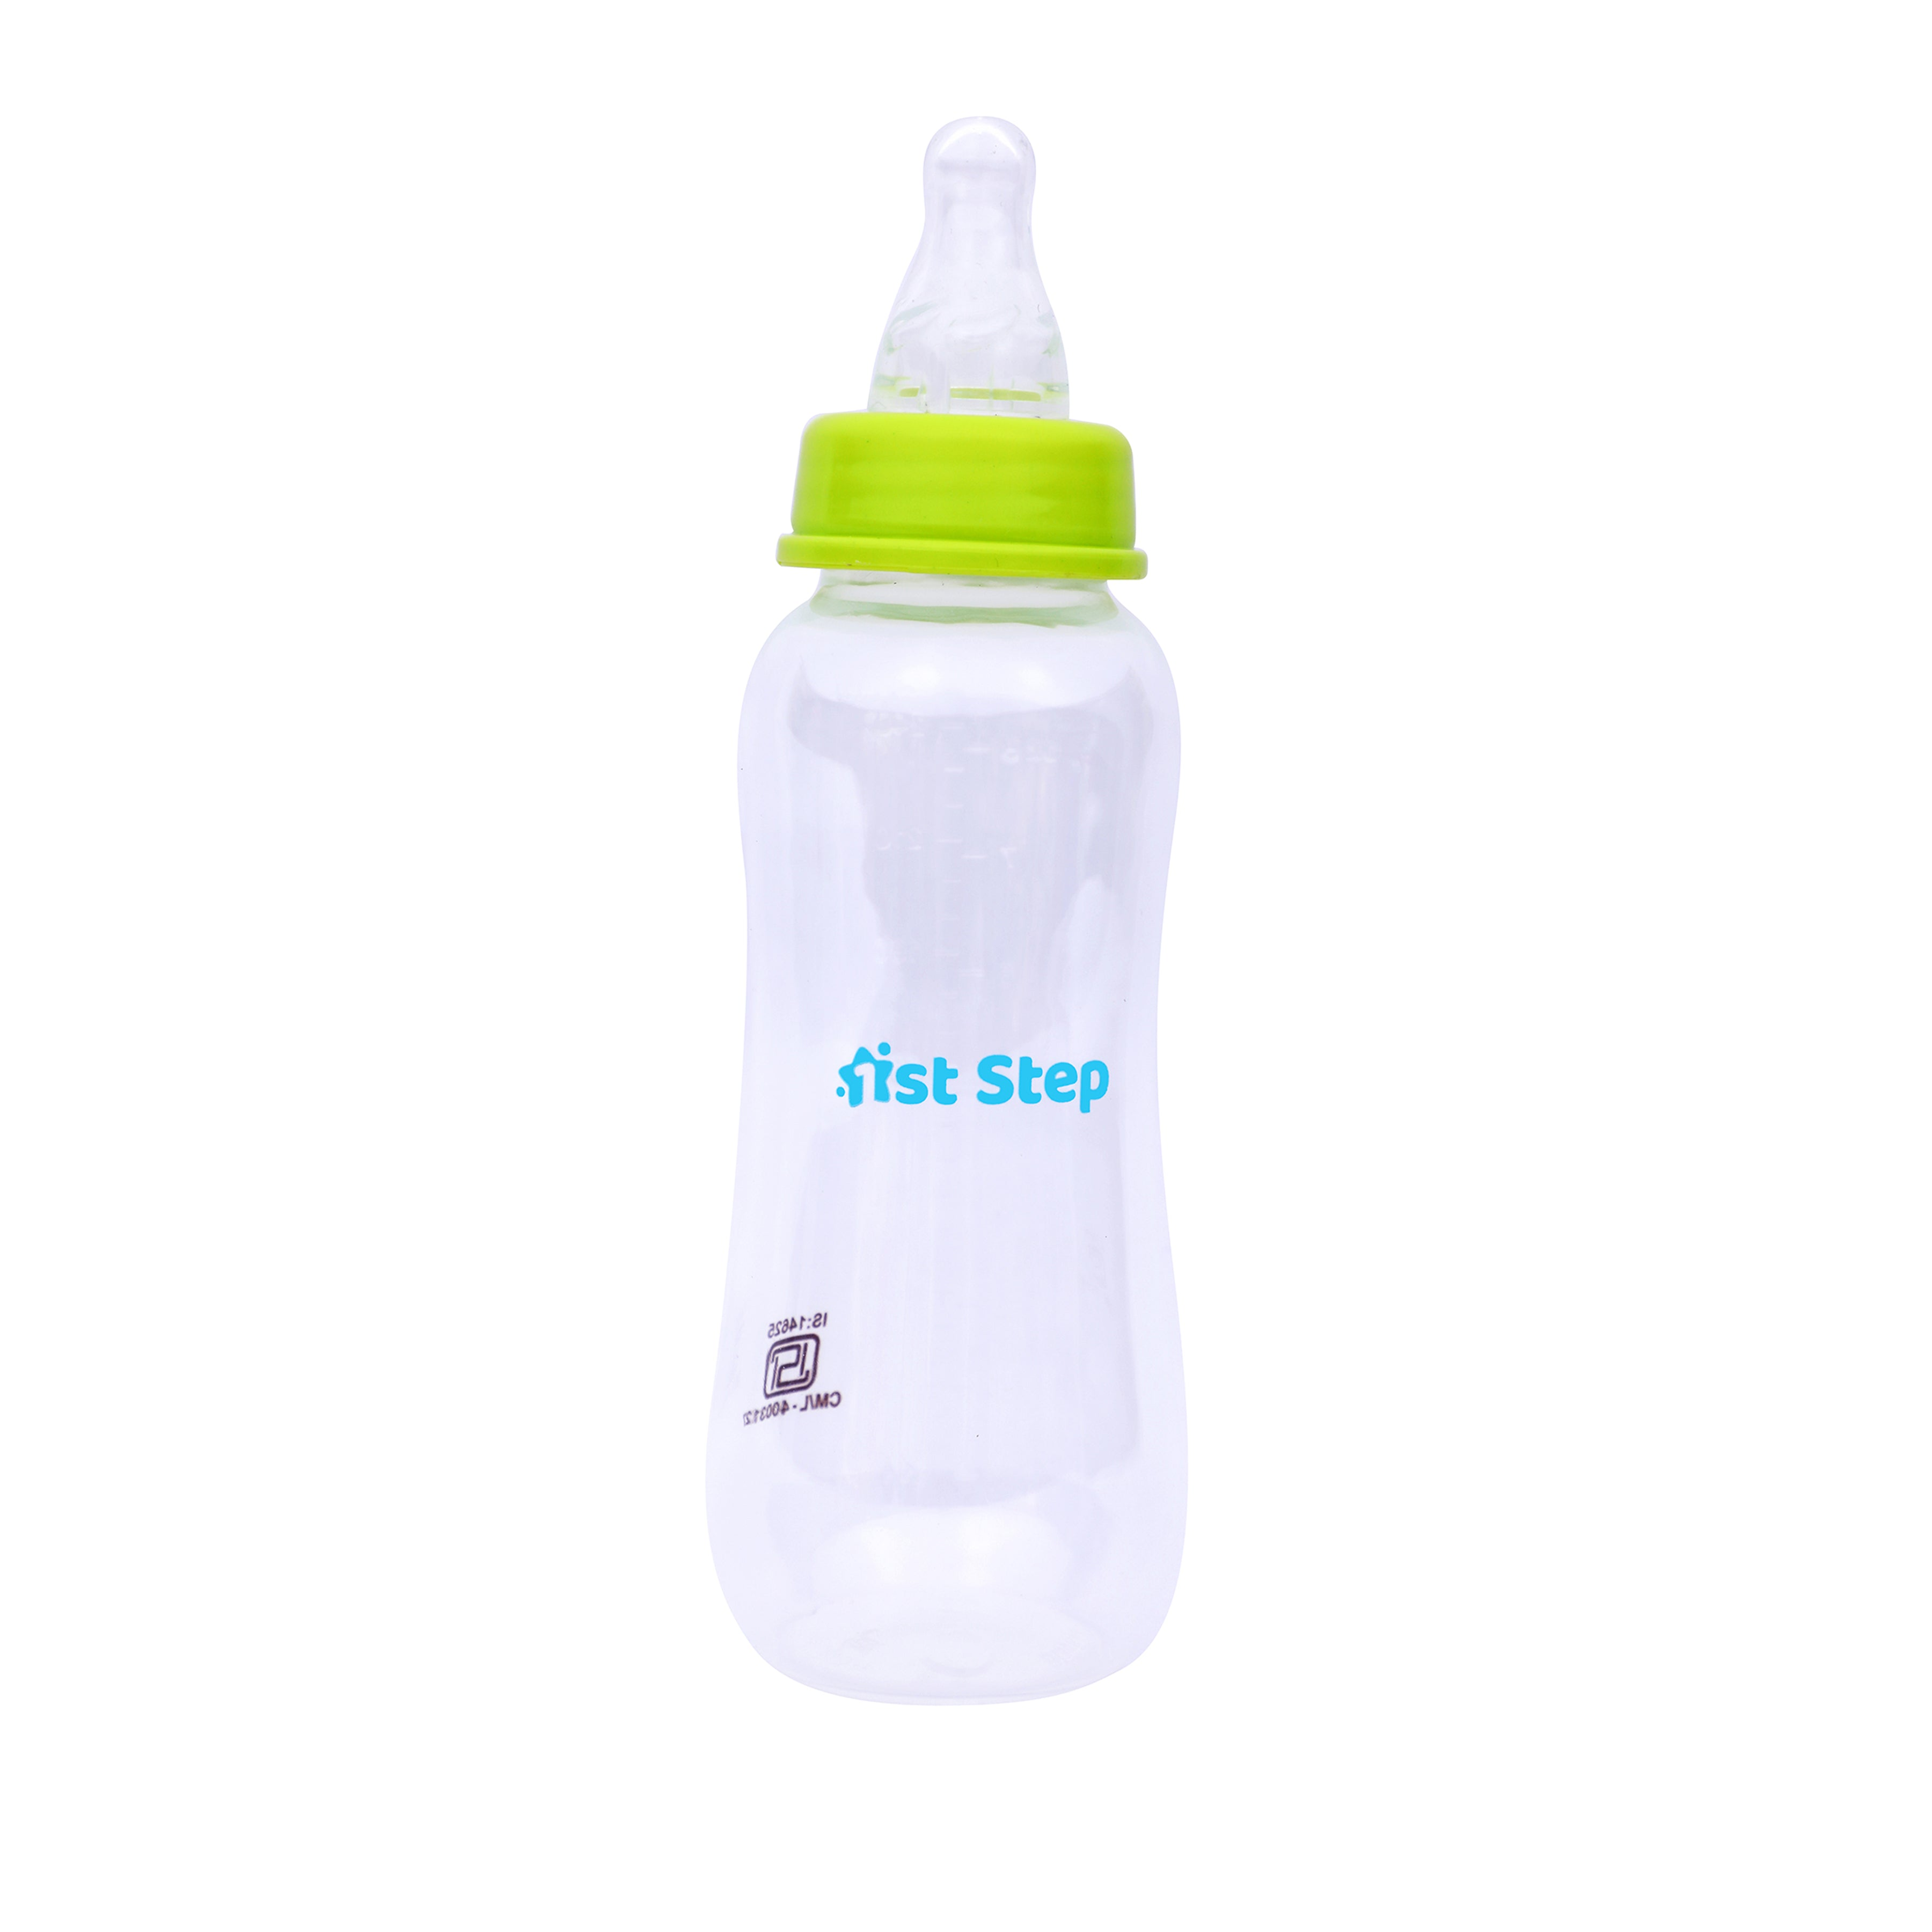 1st Step 250ml BPA Free Polypropylene Feeding Bottle With Rattle Hood - Blue